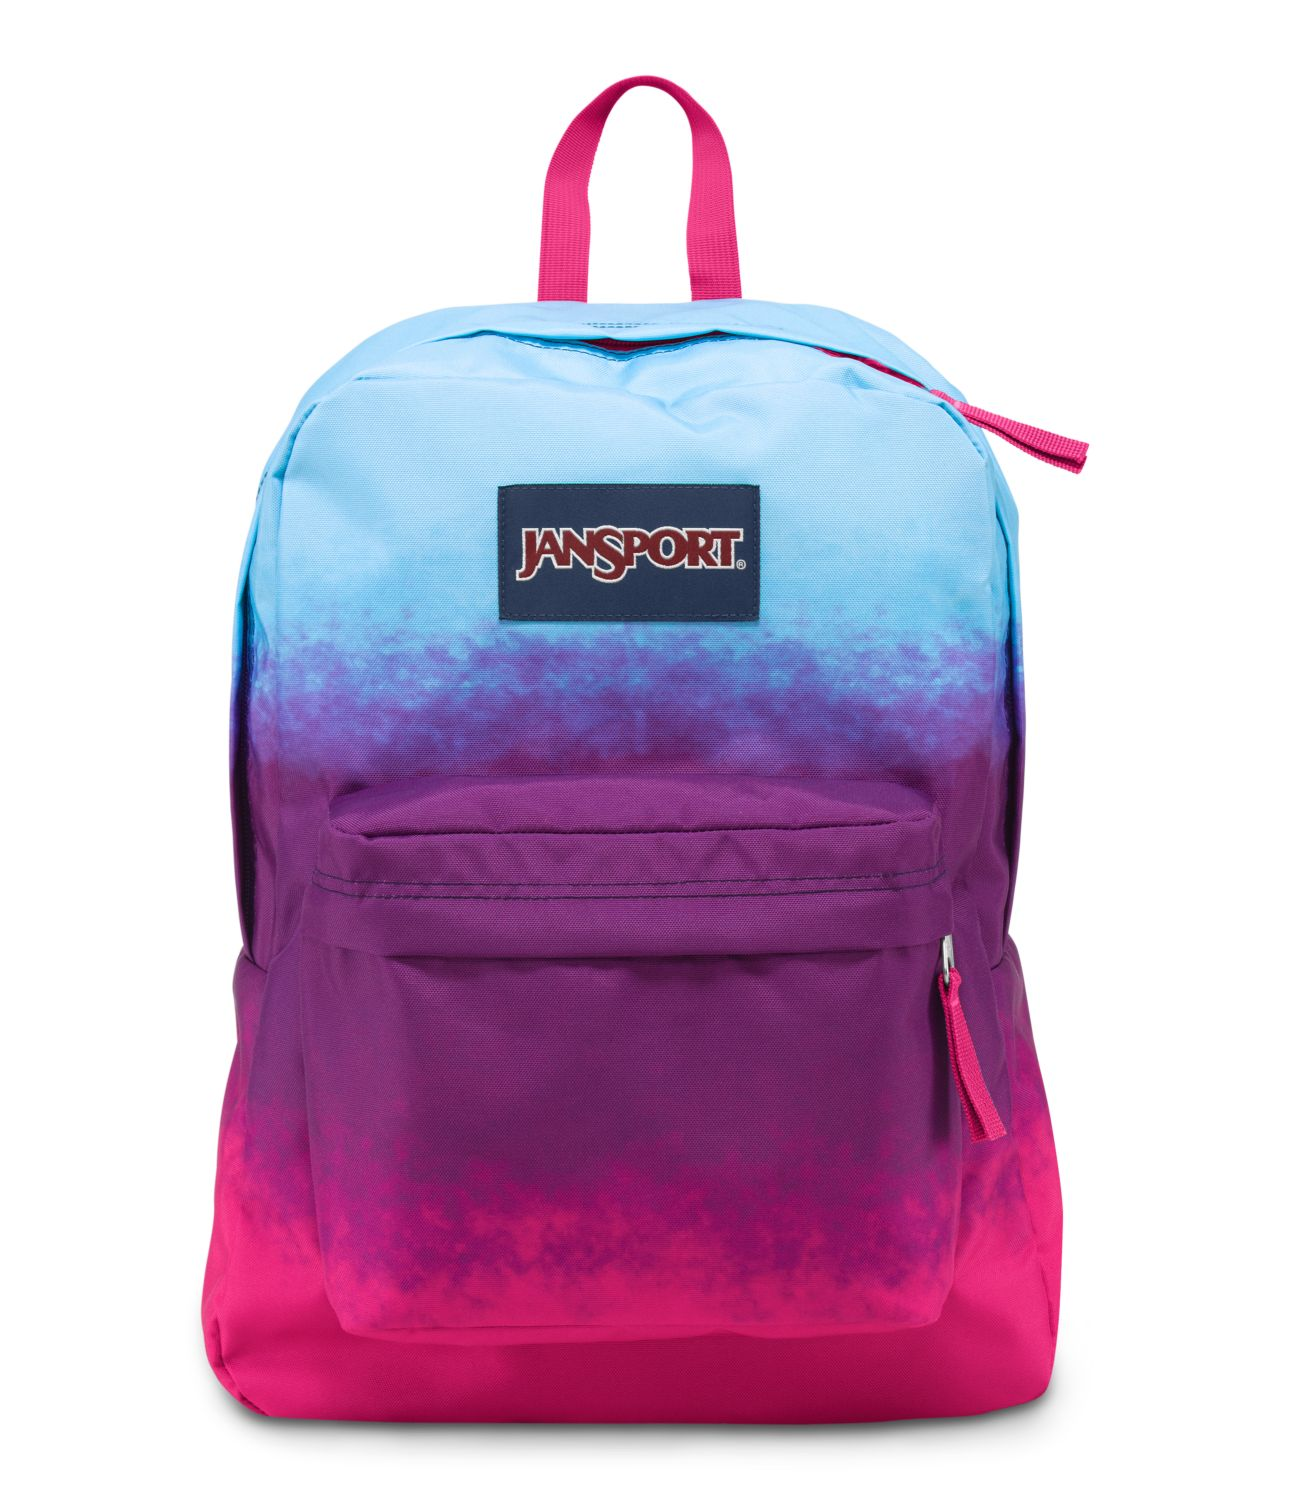 Jansport Backpacks For School bu6UiRj2